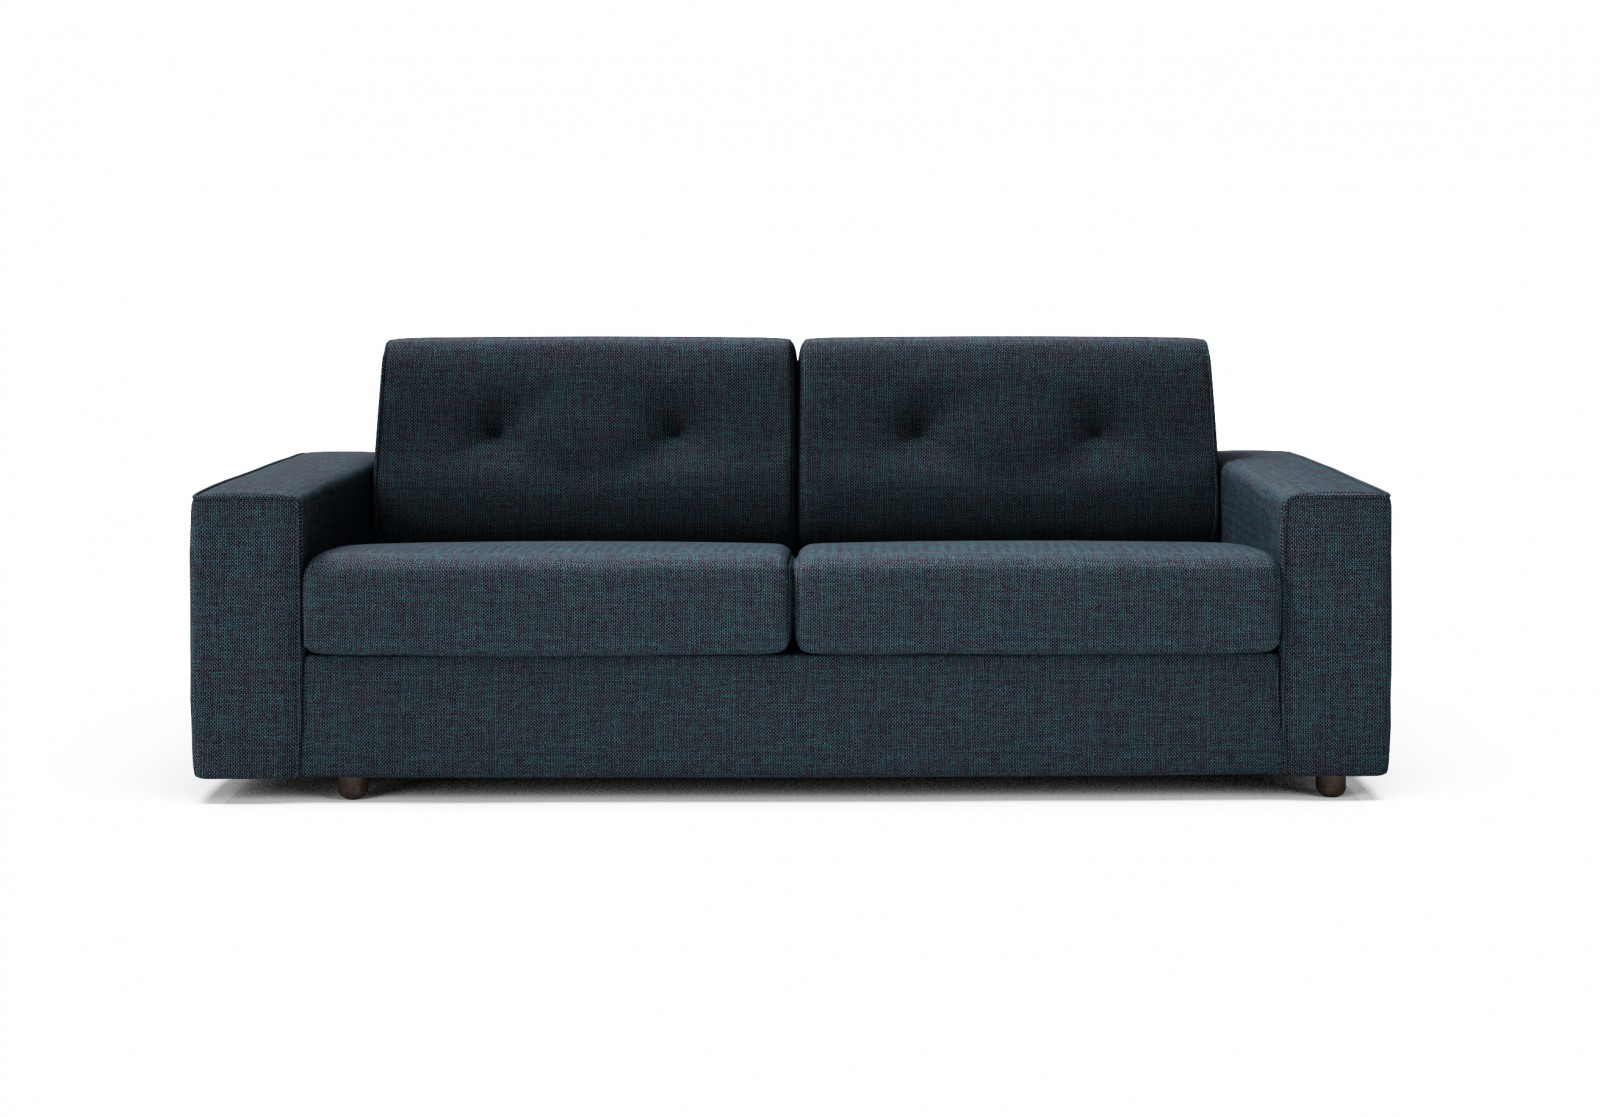 Sofa Bed Double Size Fold